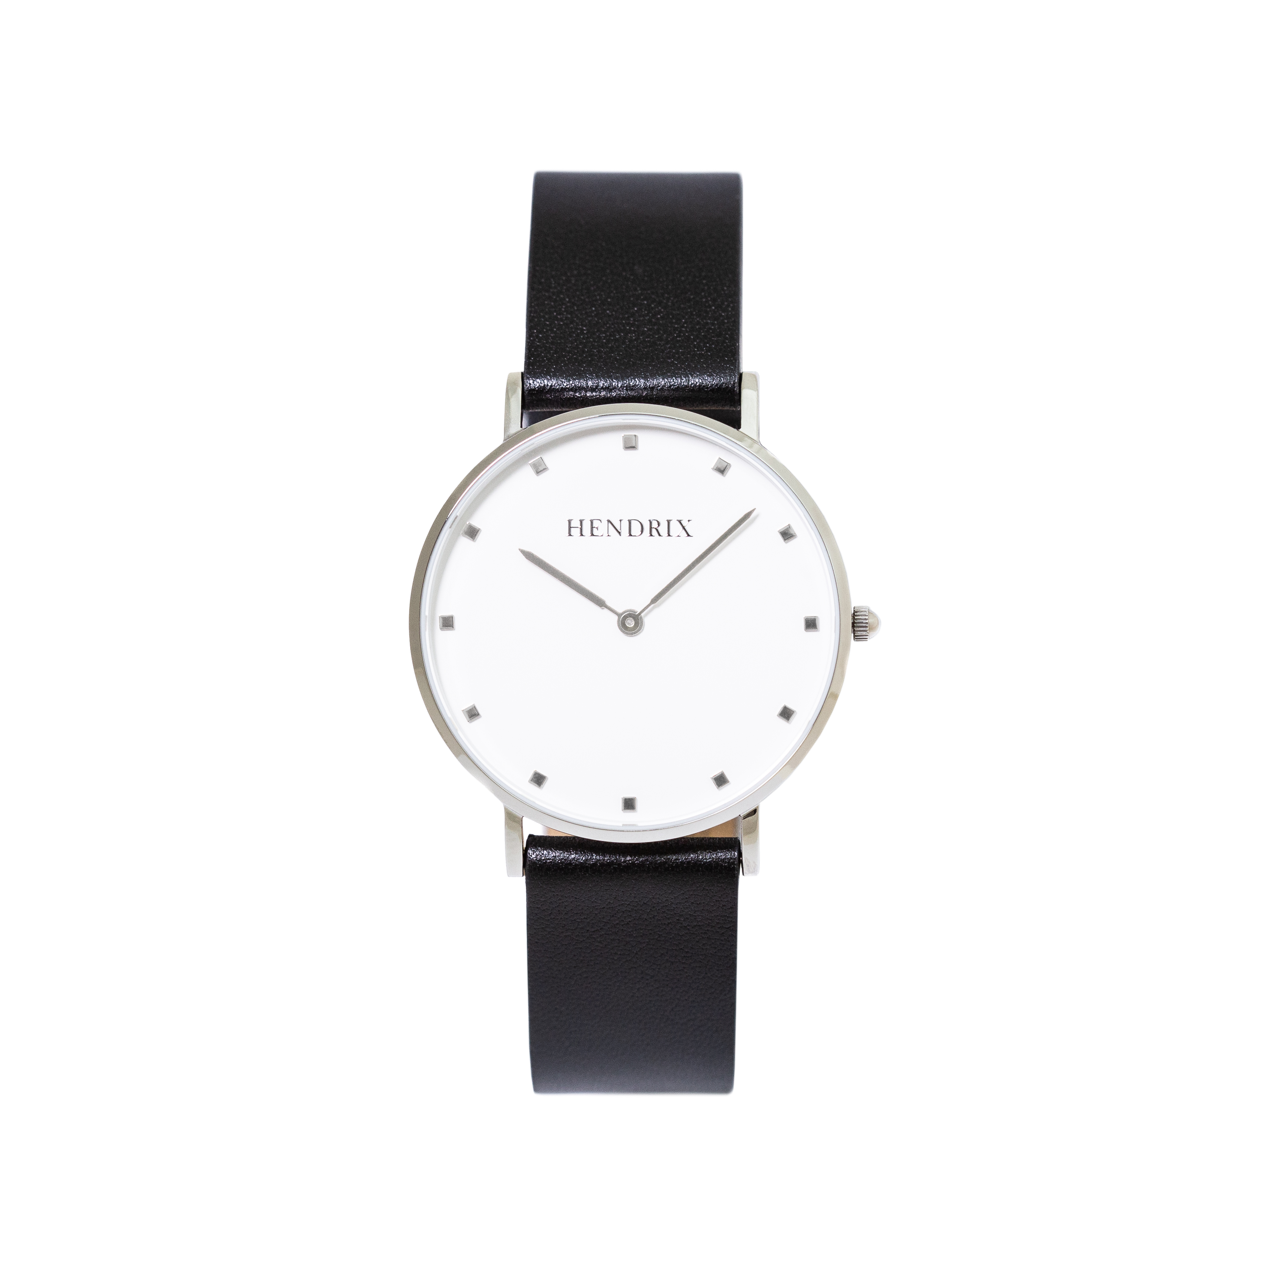 Hendrix white on black minimal unisex leather signature watch